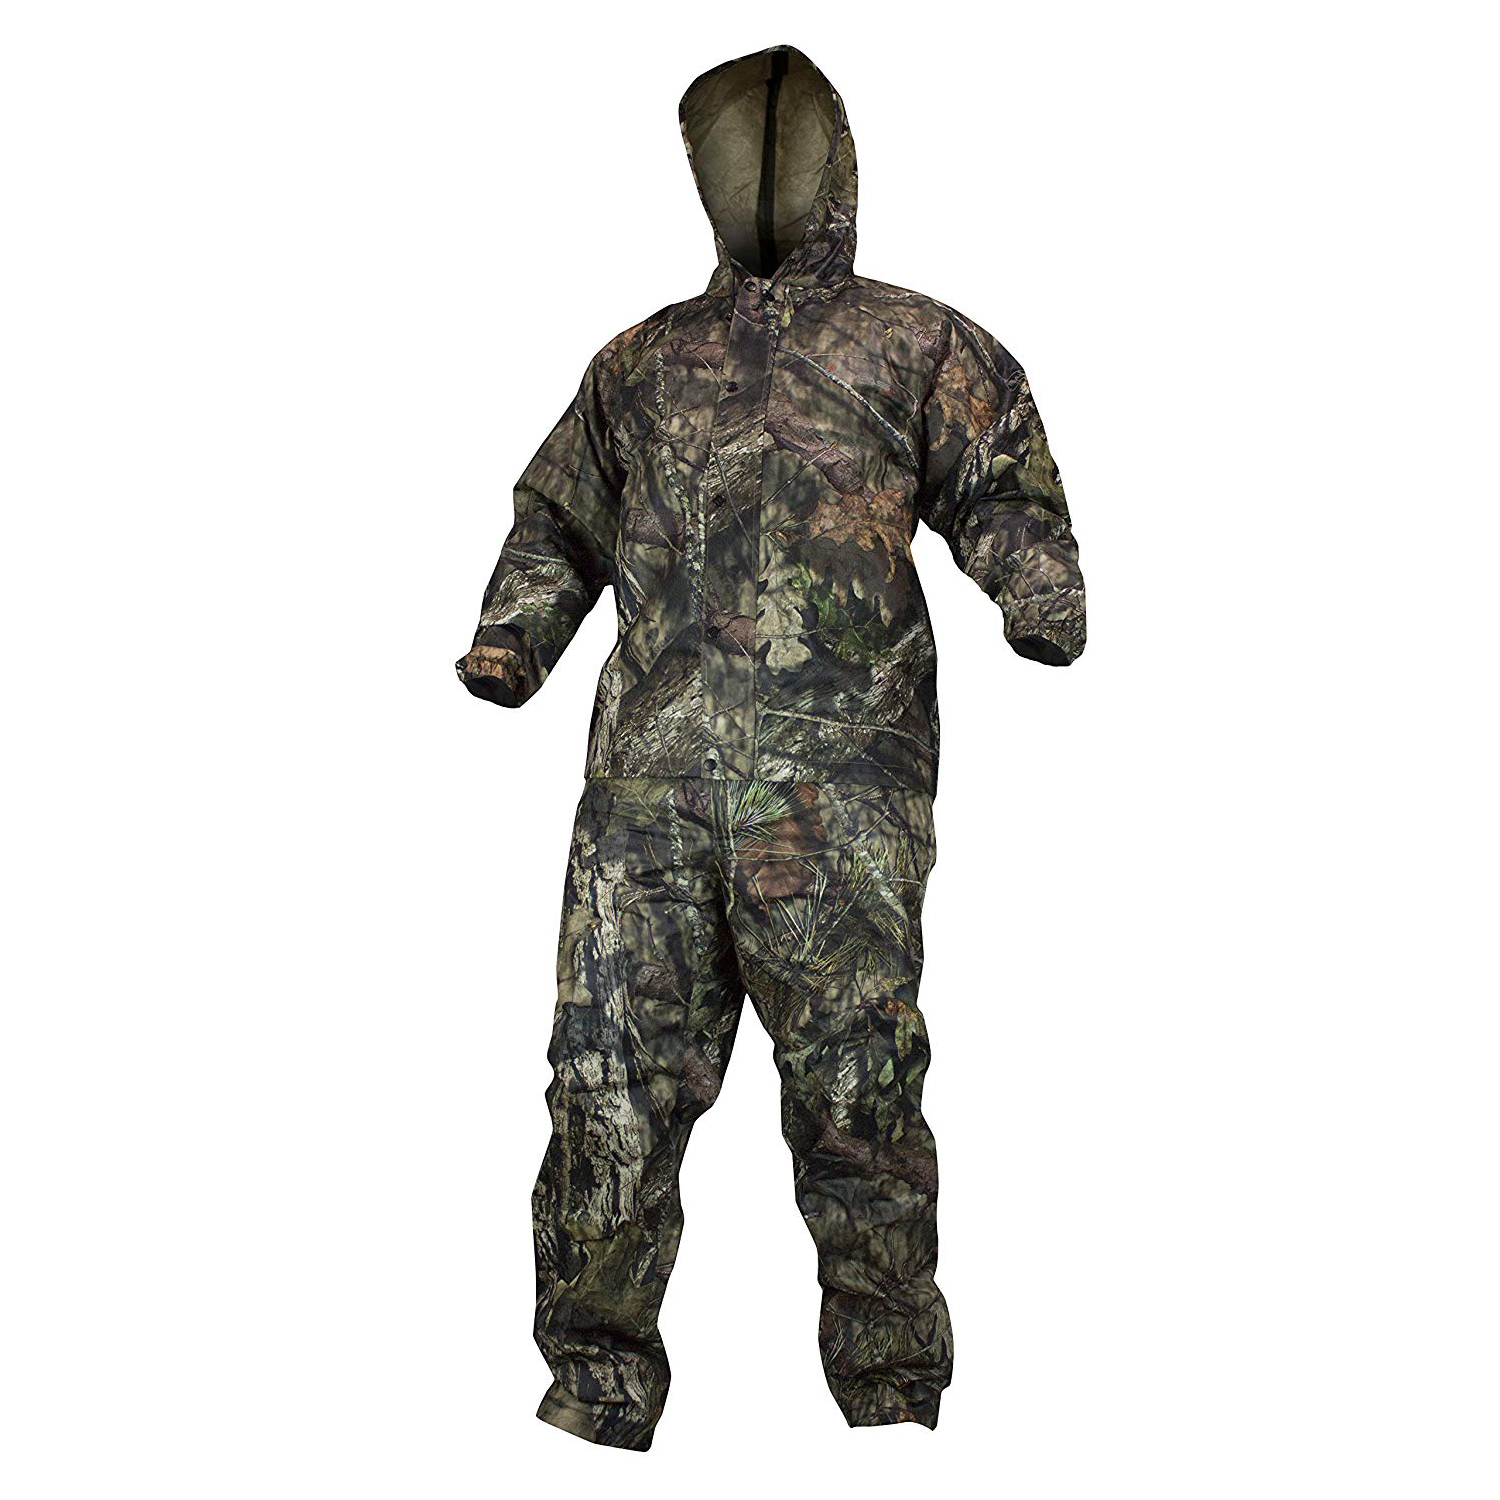 Compass 360 Men's SportTEK360 Camo Rain Suit